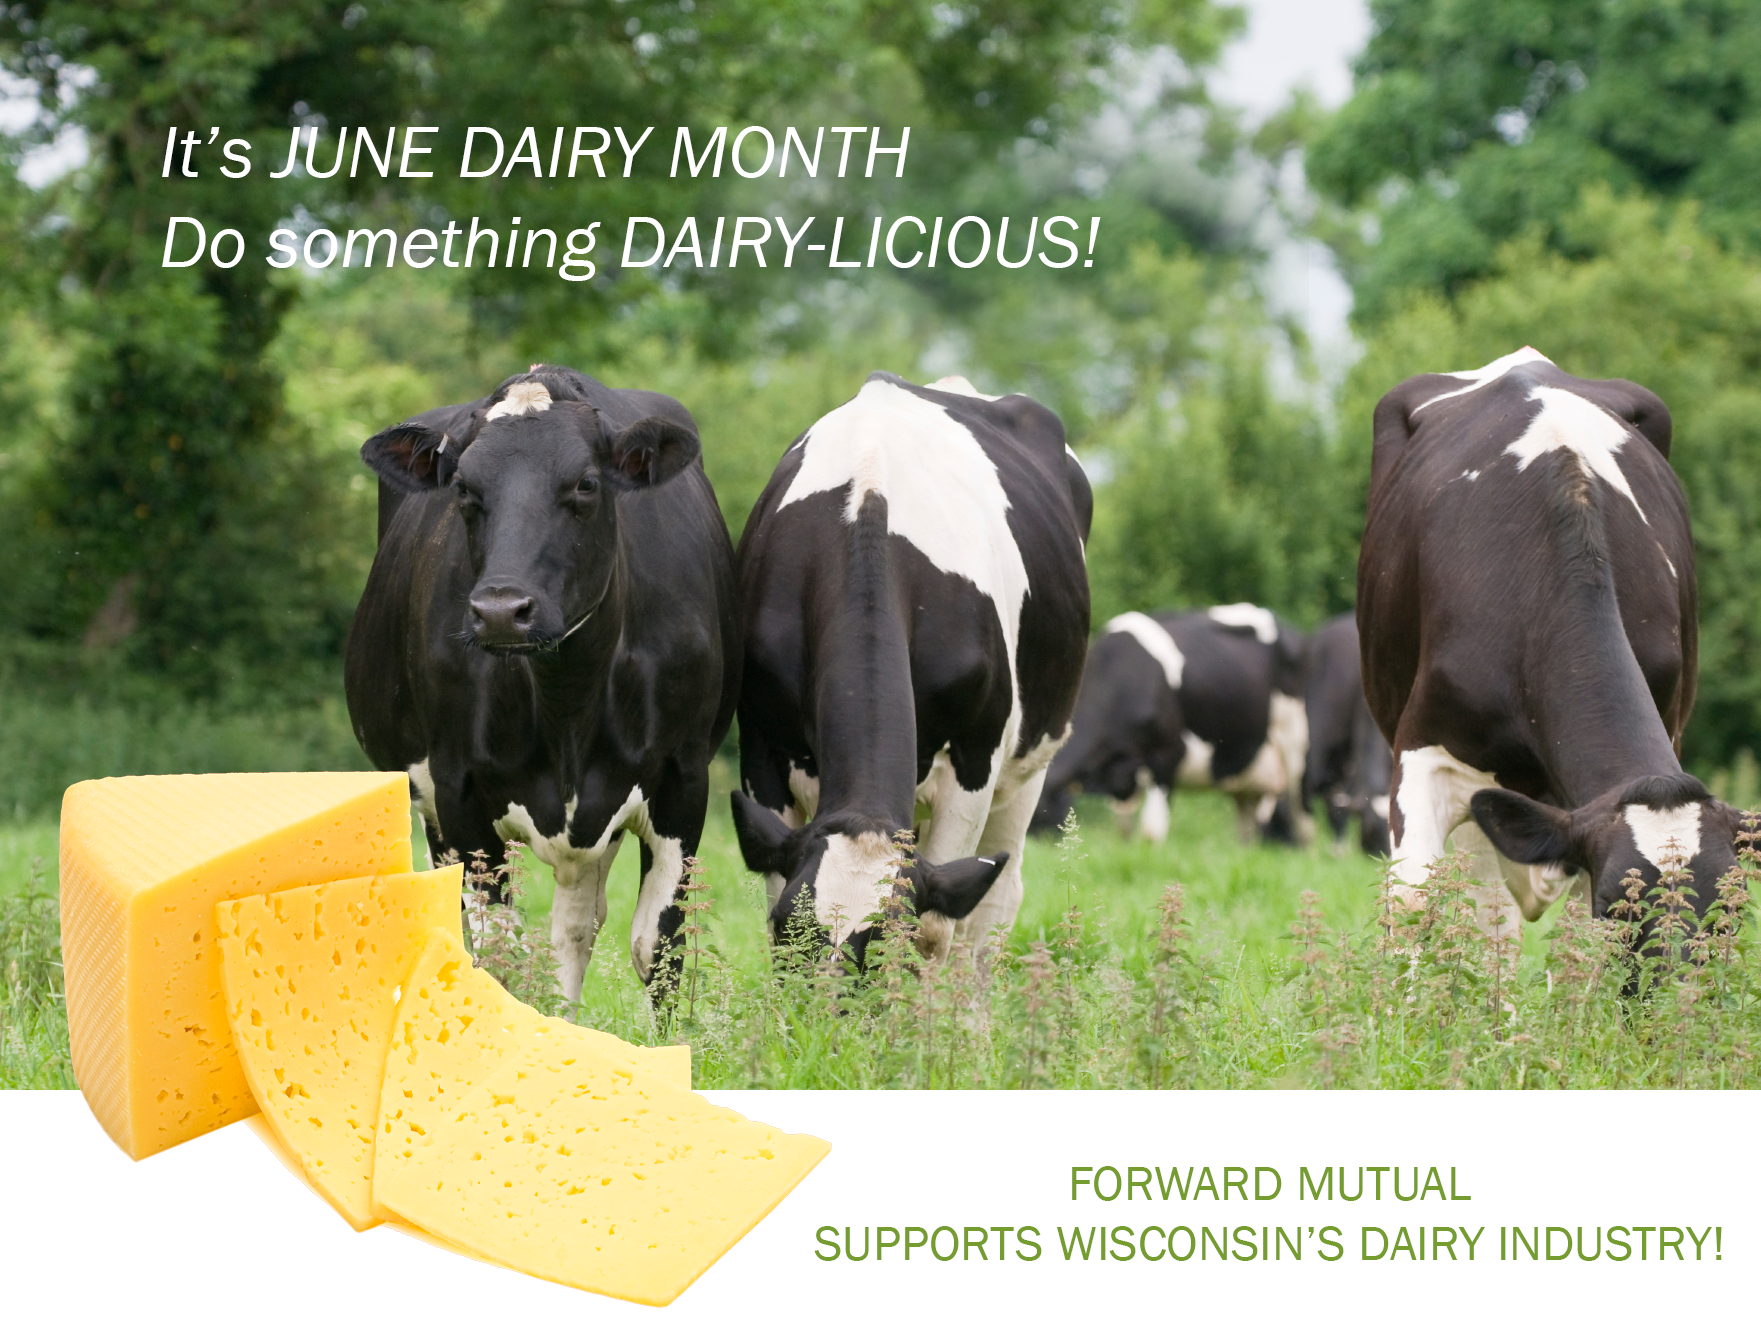 Forward Mutual supports June Dairy Month